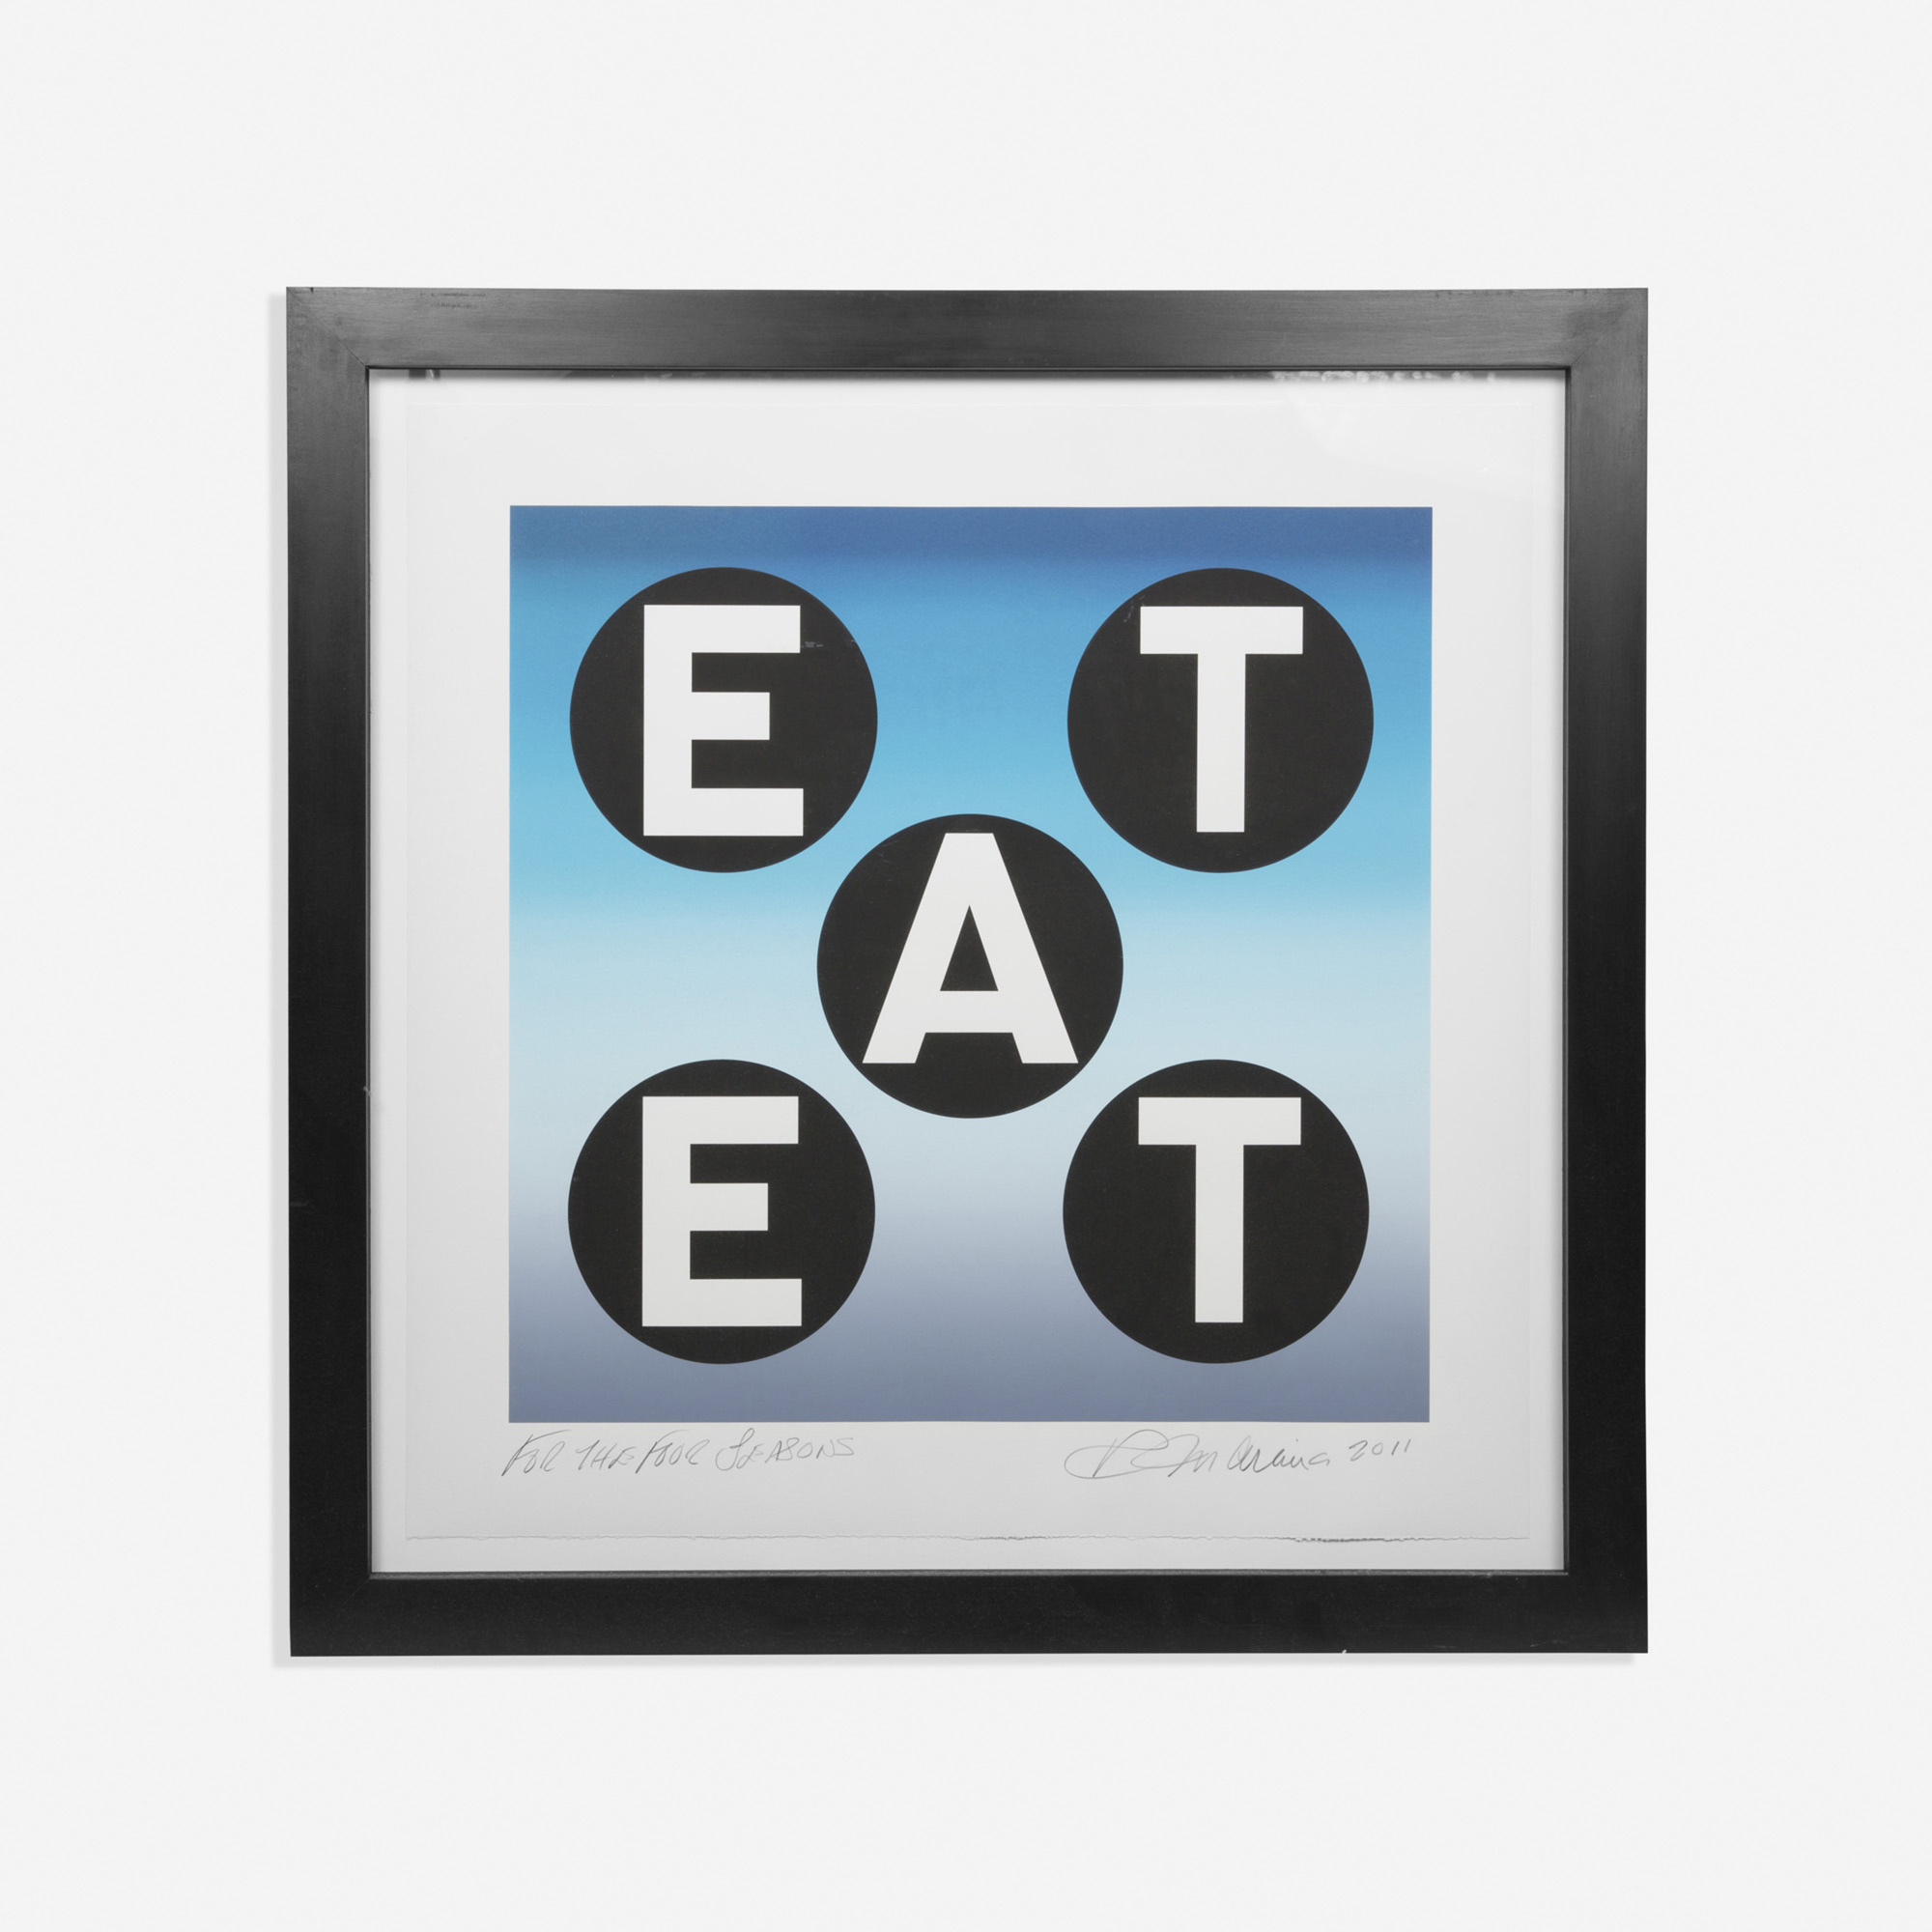 749: Robert Indiana / EAT (1 of 1)